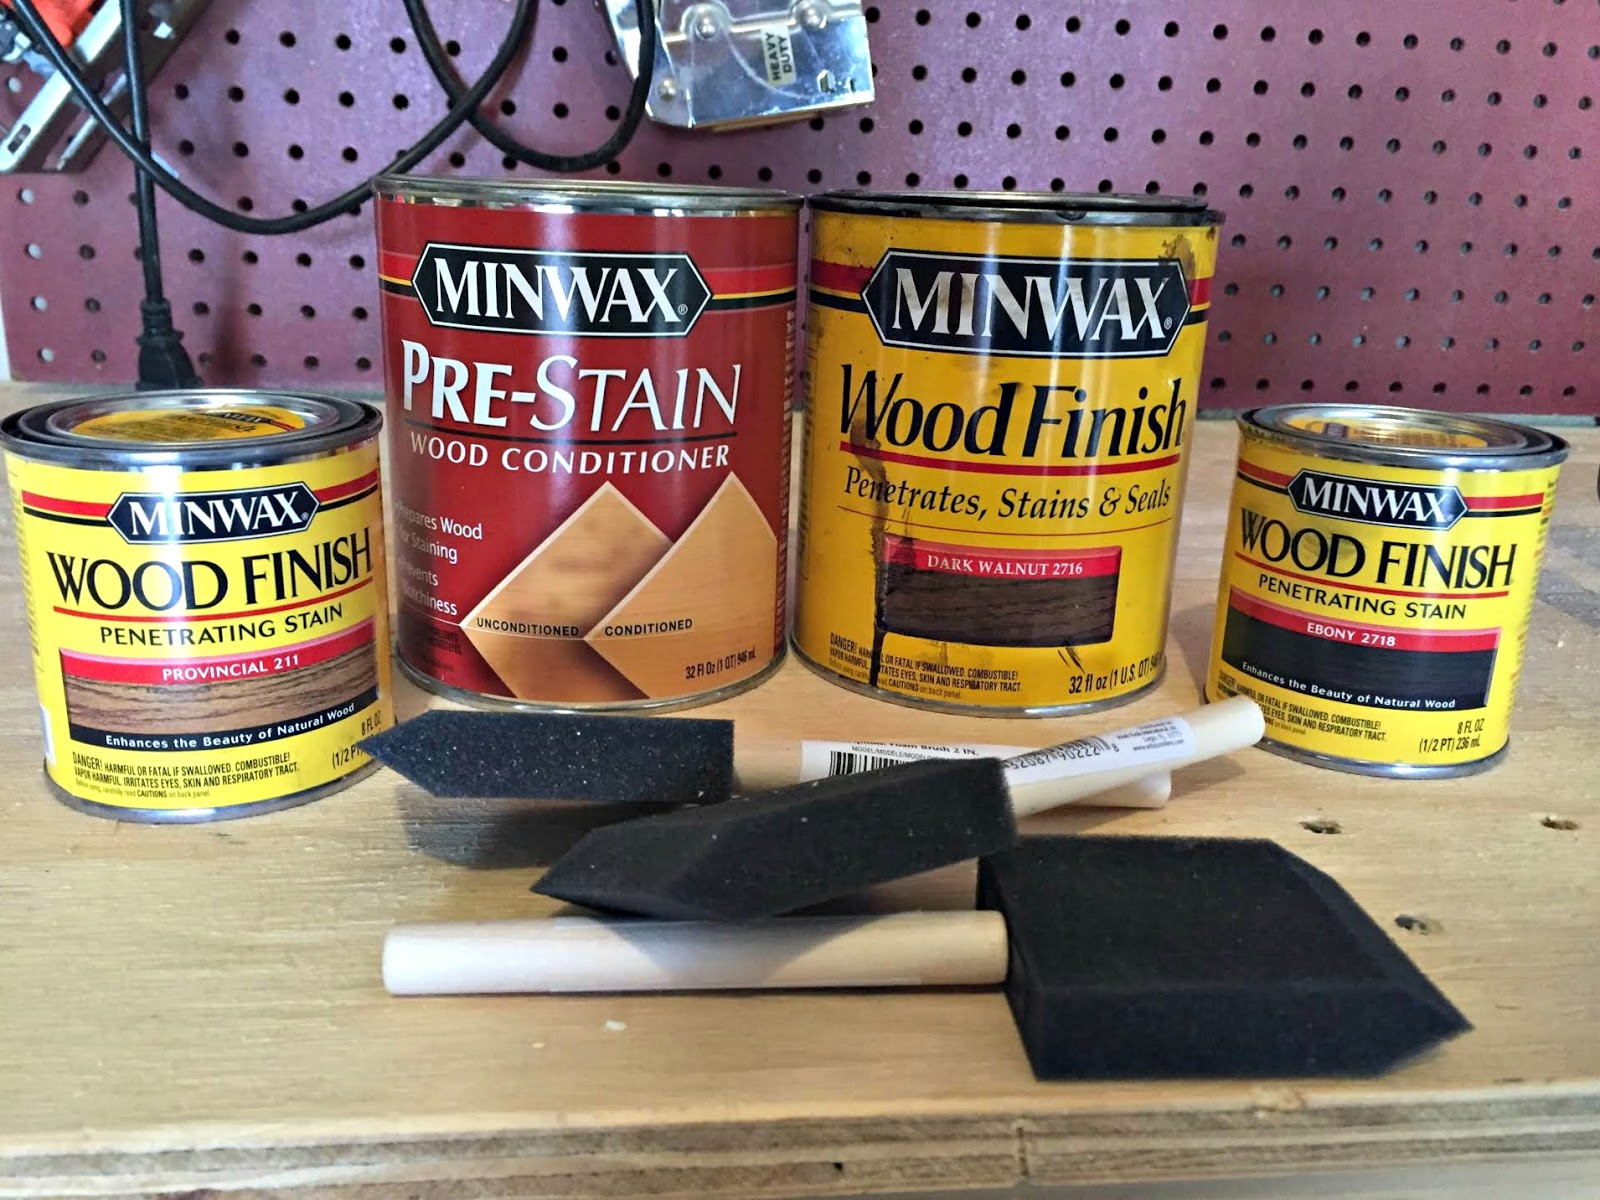 Minwax Products